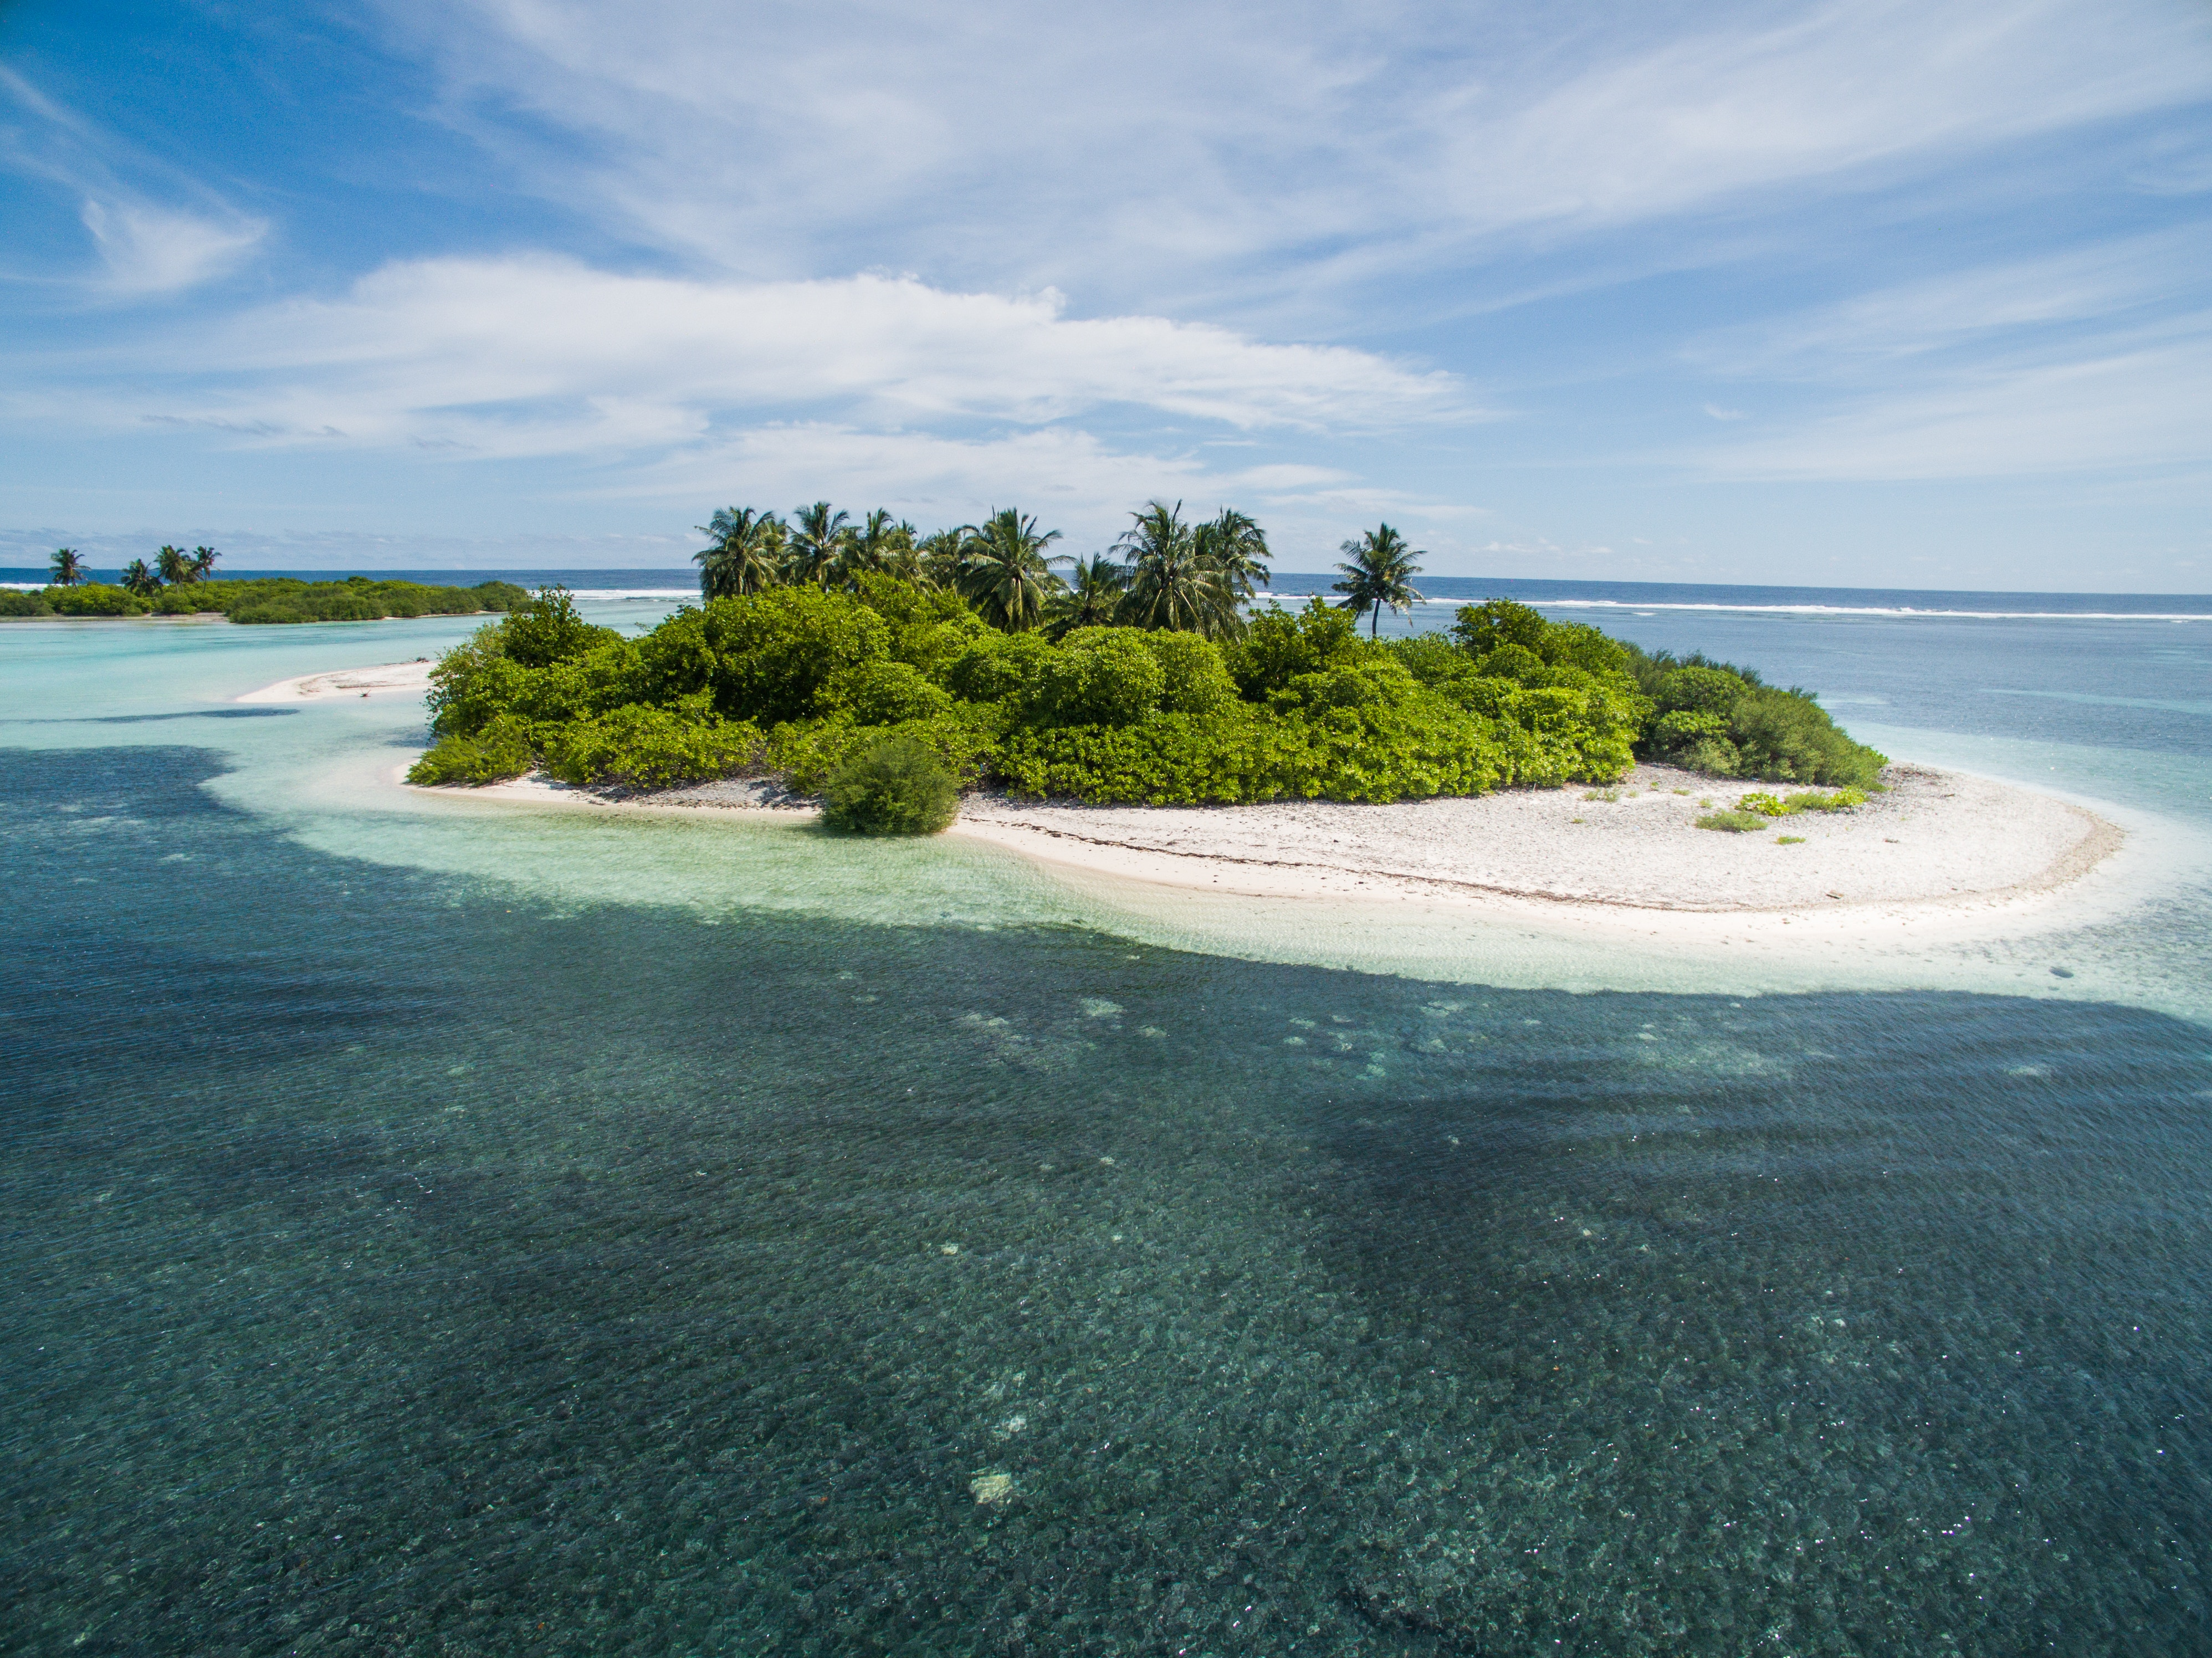 Breathtaking Destination Elopement Locations, best places to elope in the world, elopement destinations, best destination elopement locations in the world